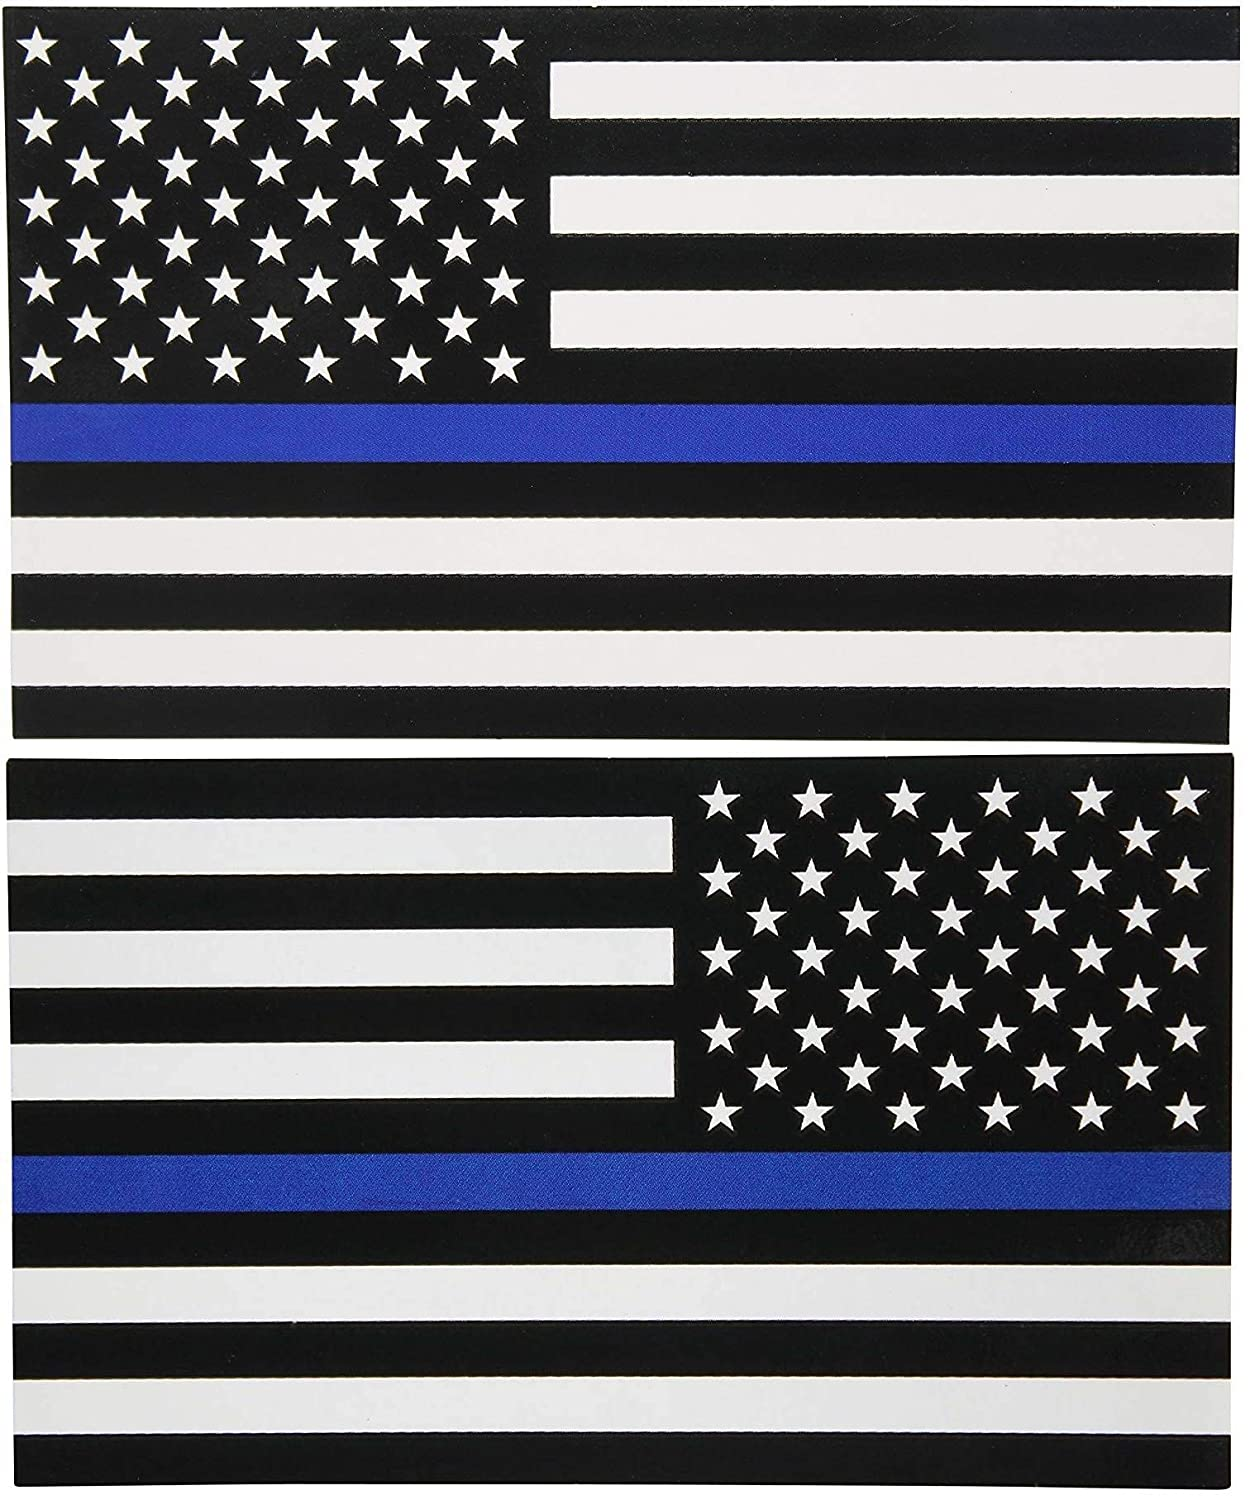 USA Military Rock Metal Heavy Decal Laptop Car Window Door Wall Motorcycle Helmet Set size 3 x 5inch Sticker American Flag Subdued Thin Blue Line Left-Right